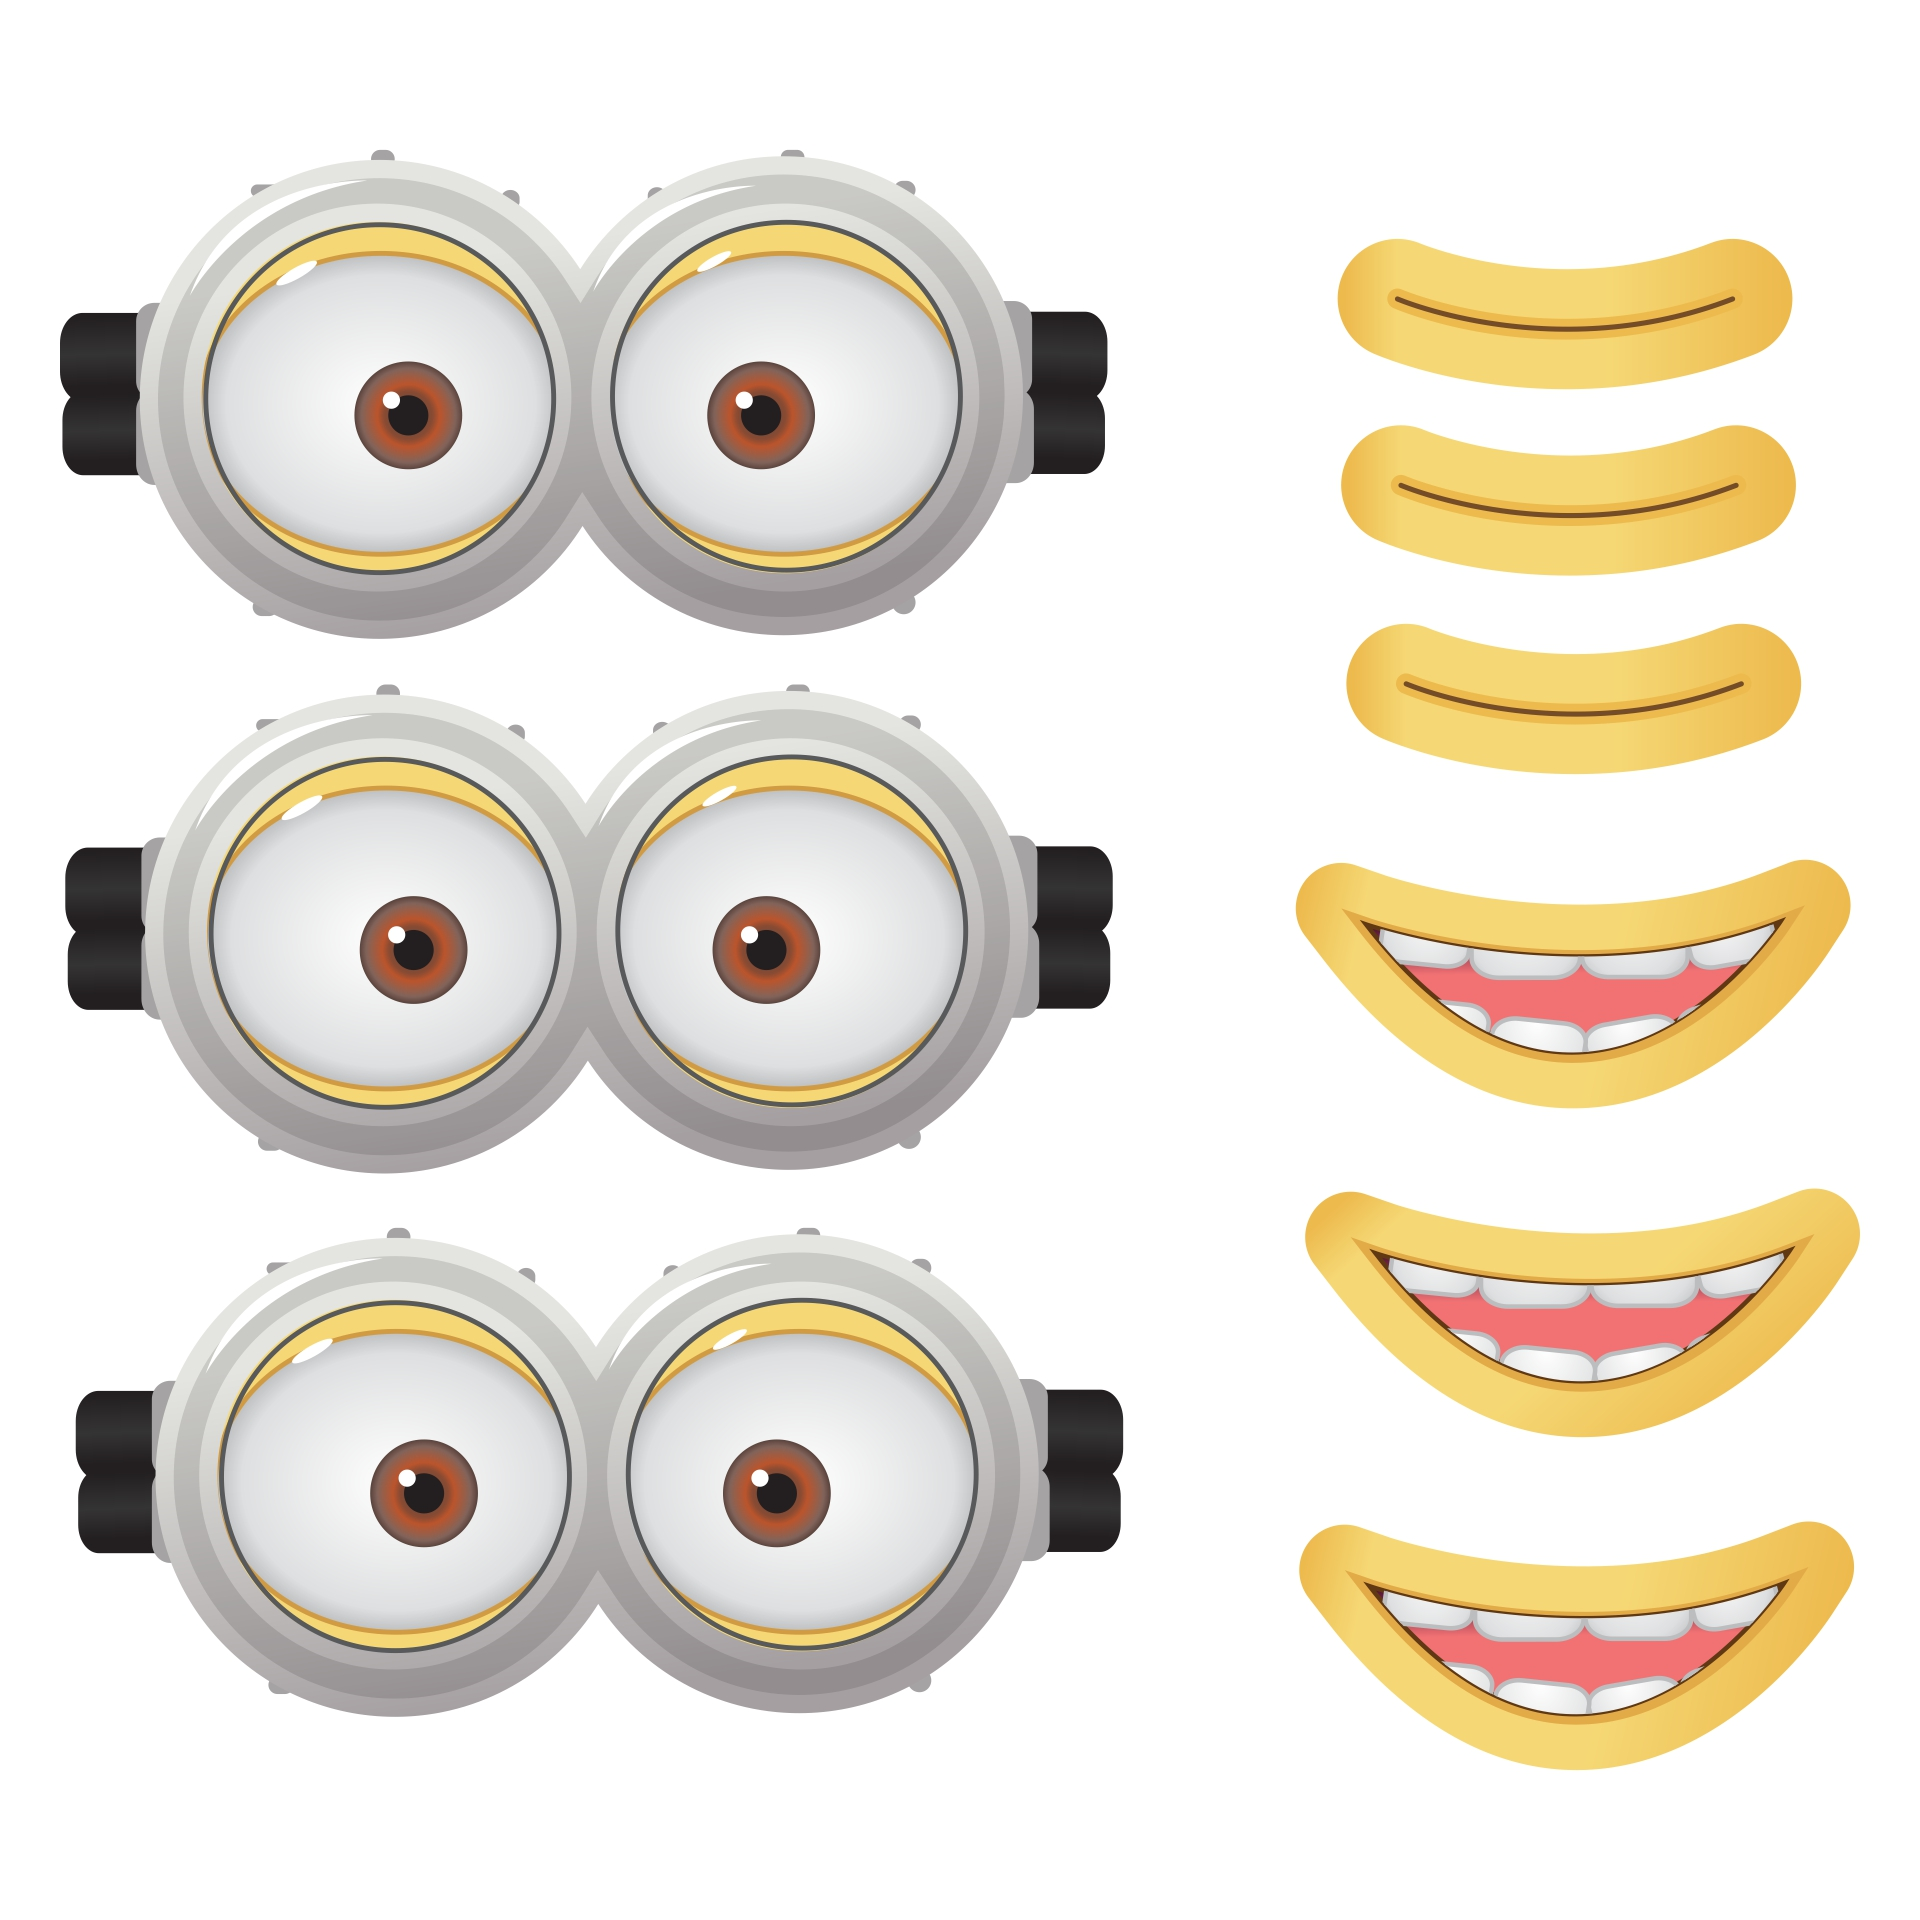 Printable Minion Eyes and Mouth